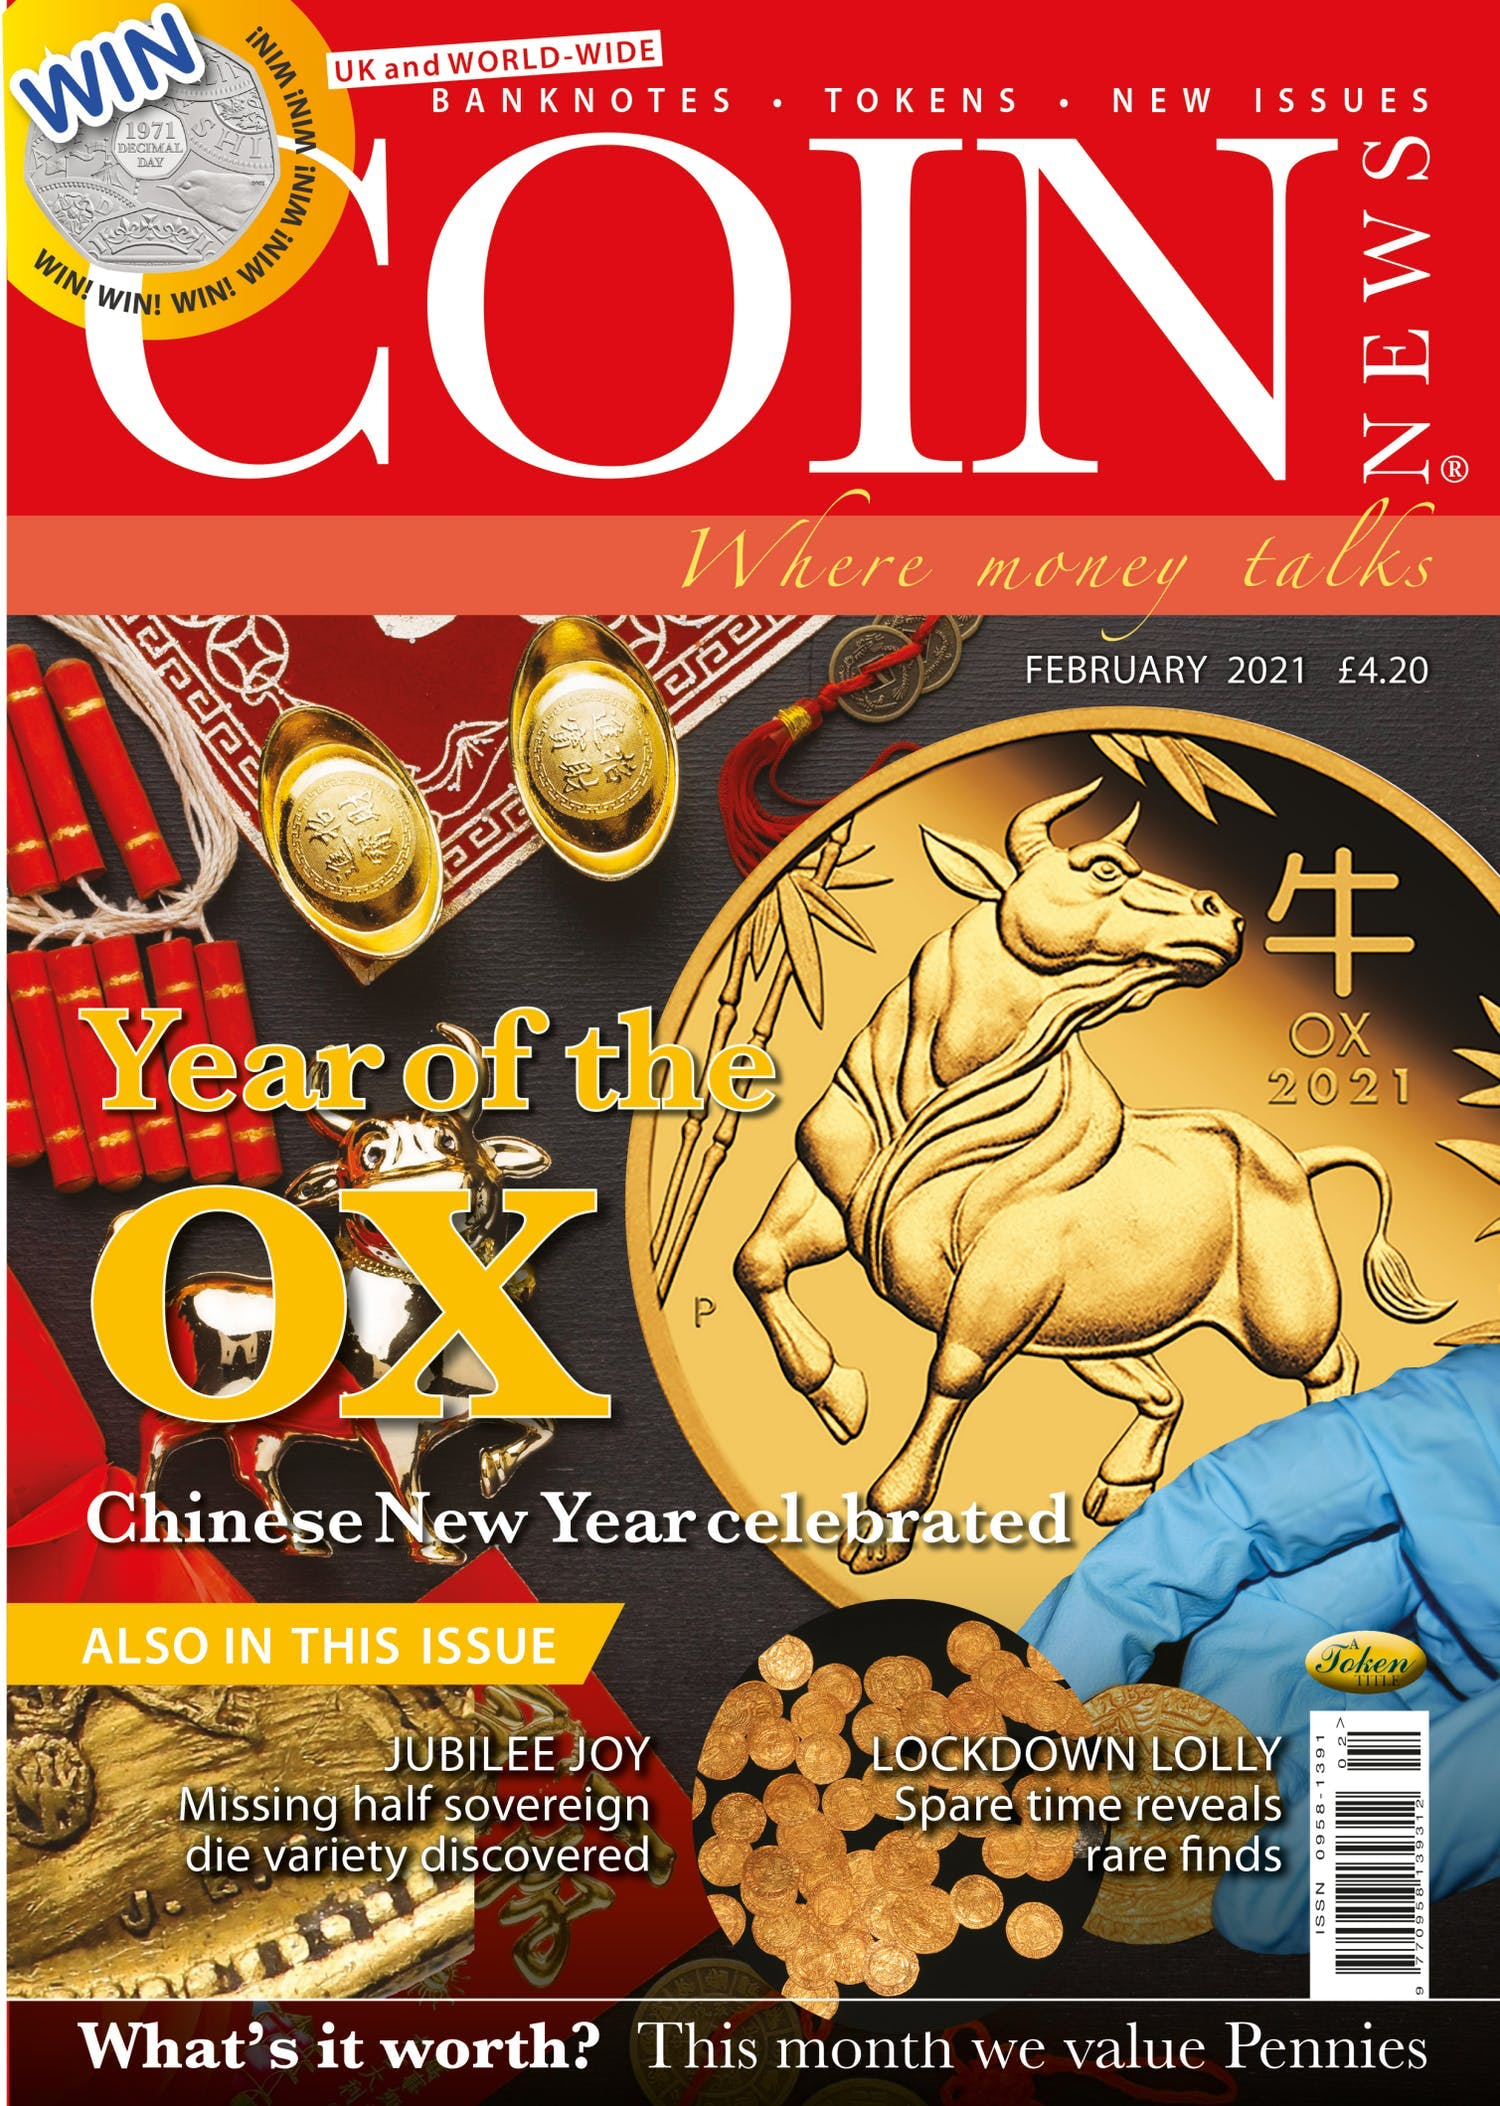 The front cover of Coin News, Volume 58, Number 2, February 2021